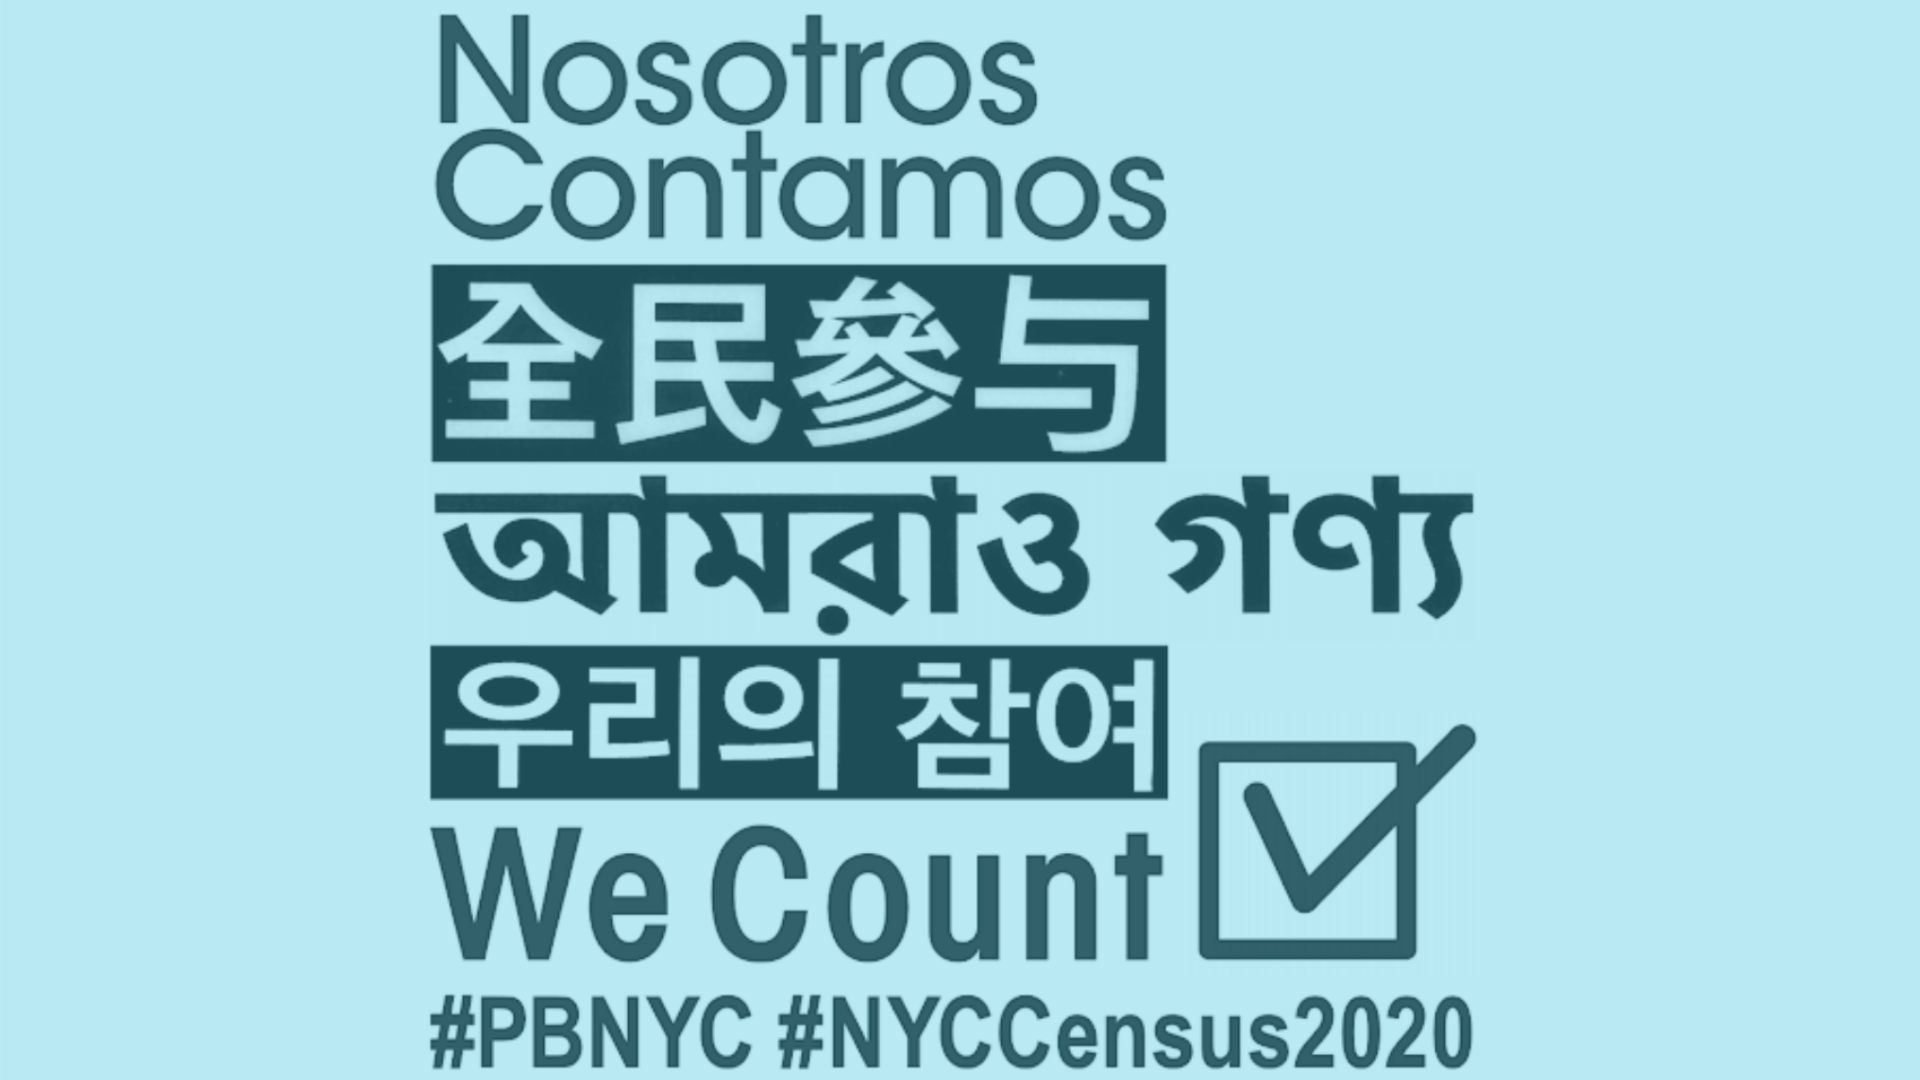 Get Out The Count! The Importance Of The Census For Our Communities